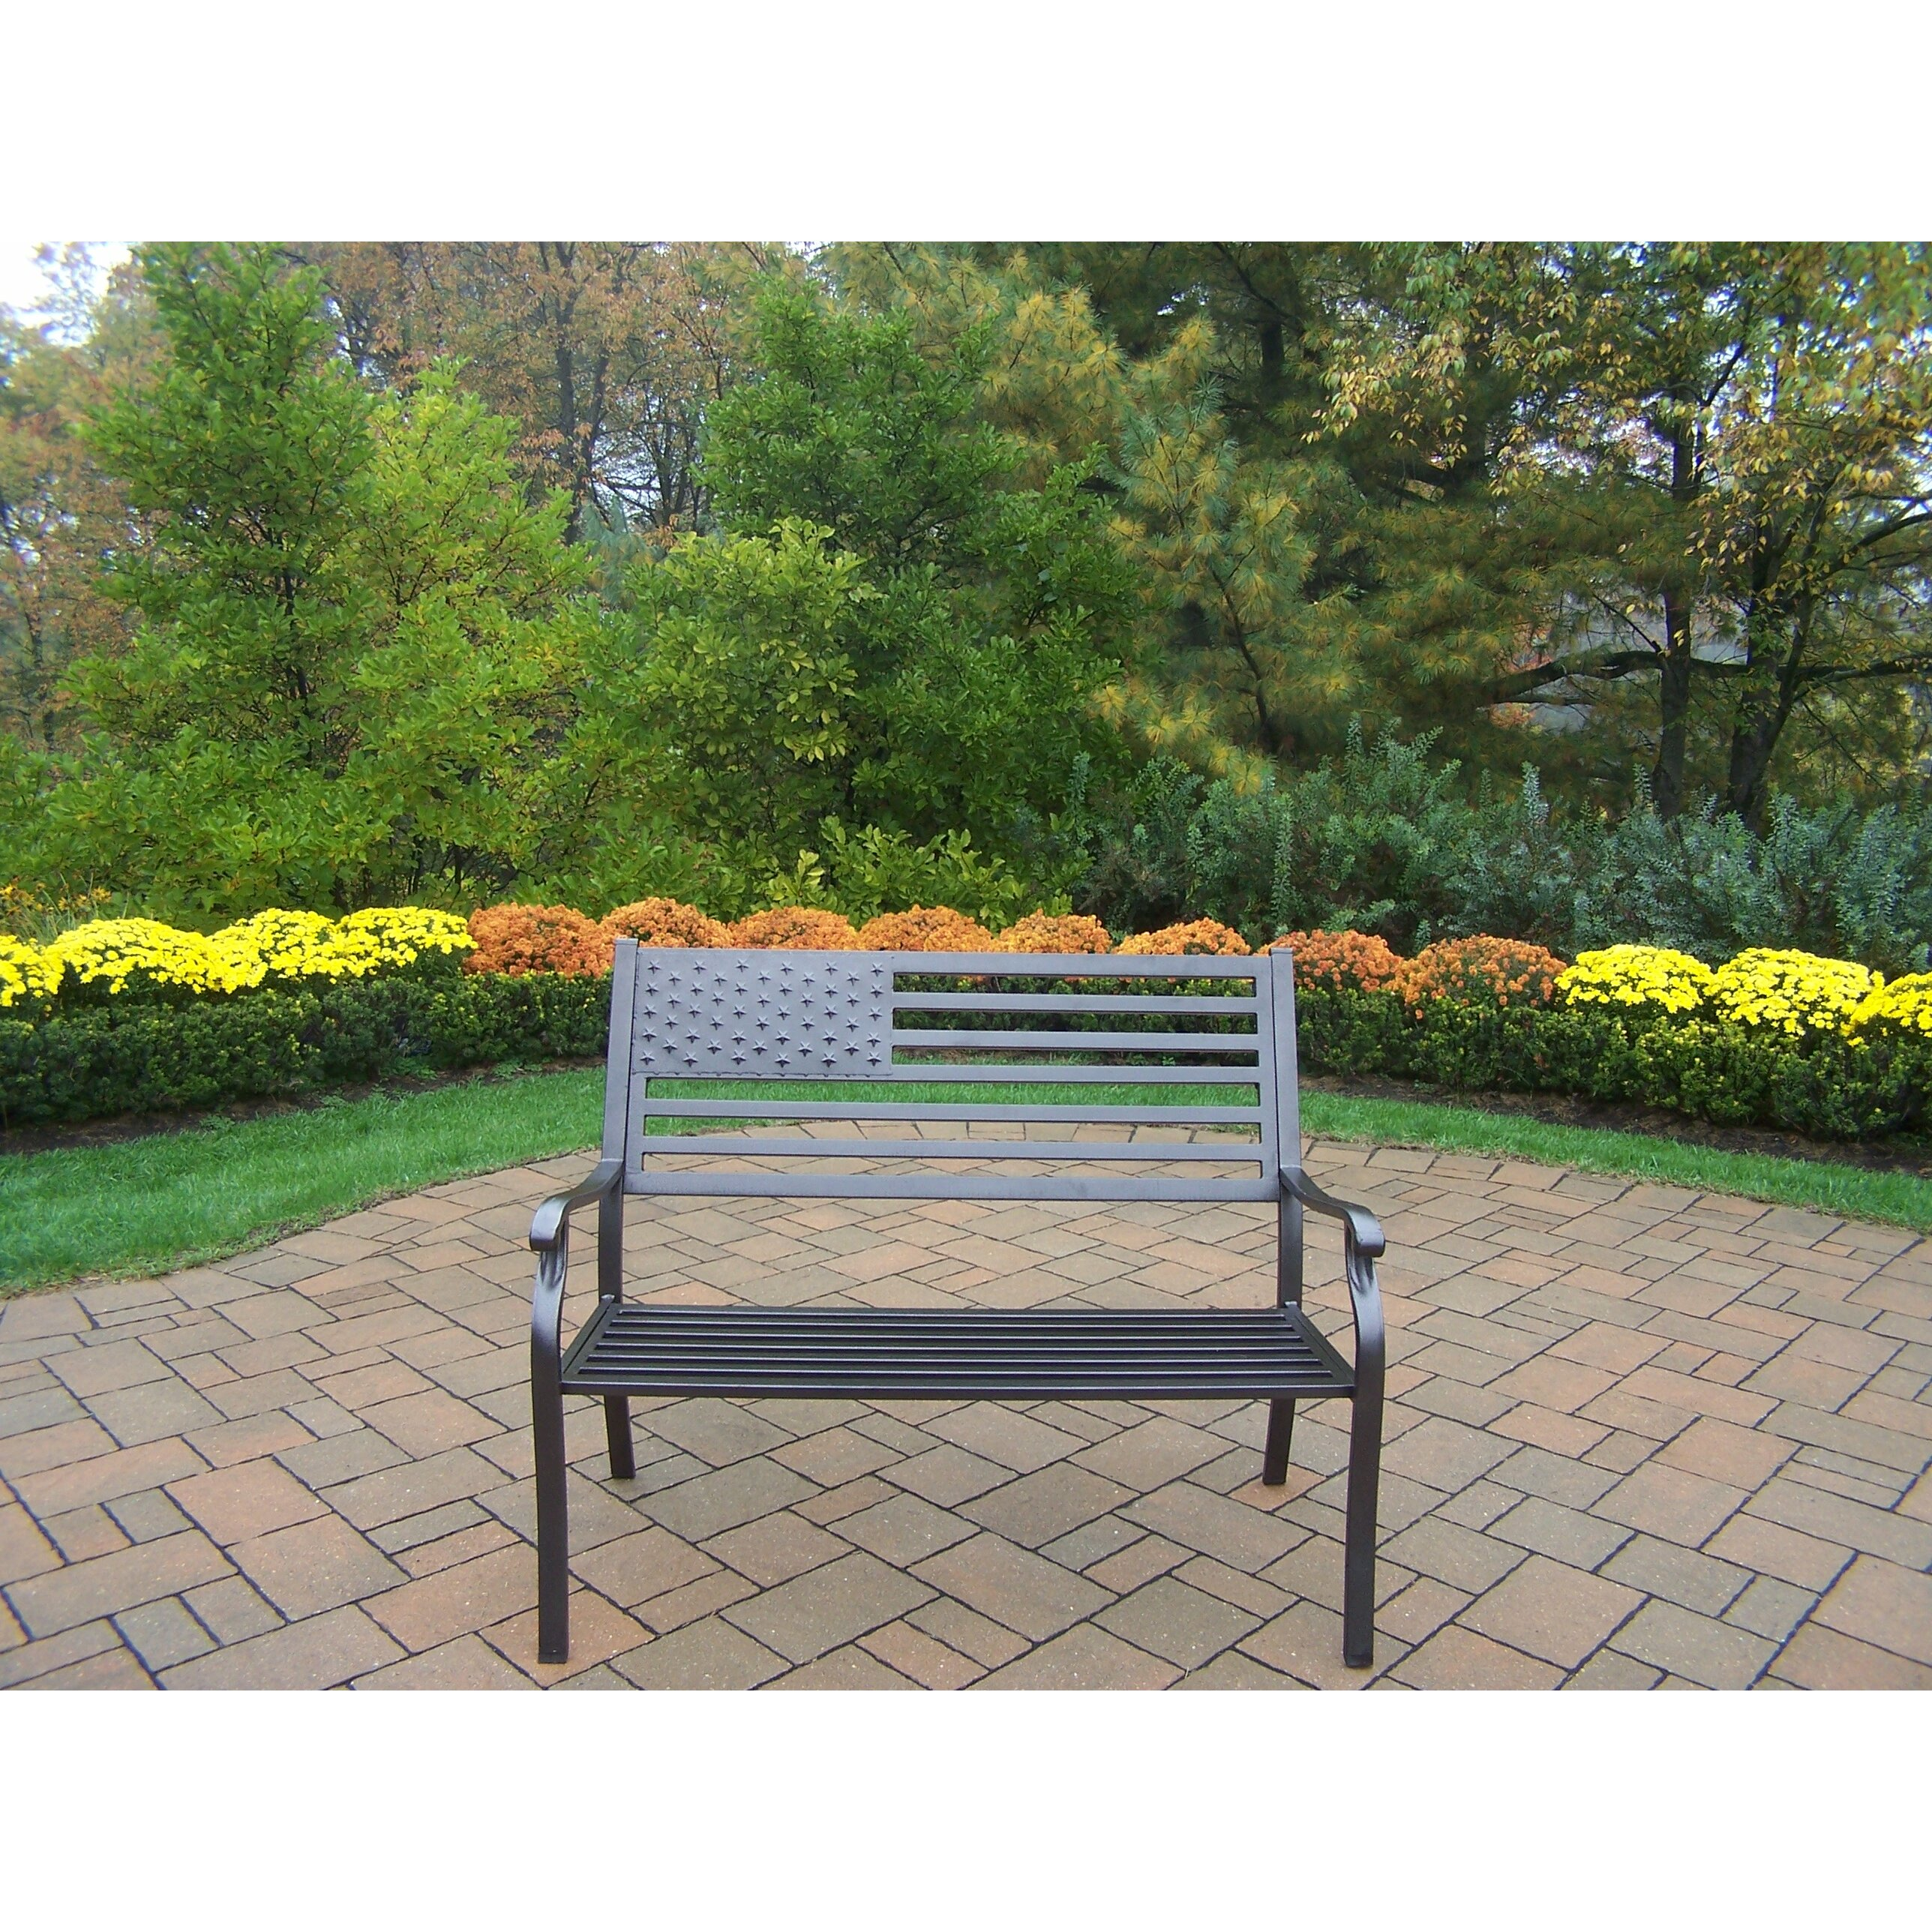 ... Patio Swivel Club Chair Side View; Oakland Living Rochester American  Pride Flag Metal Garden Bench ...